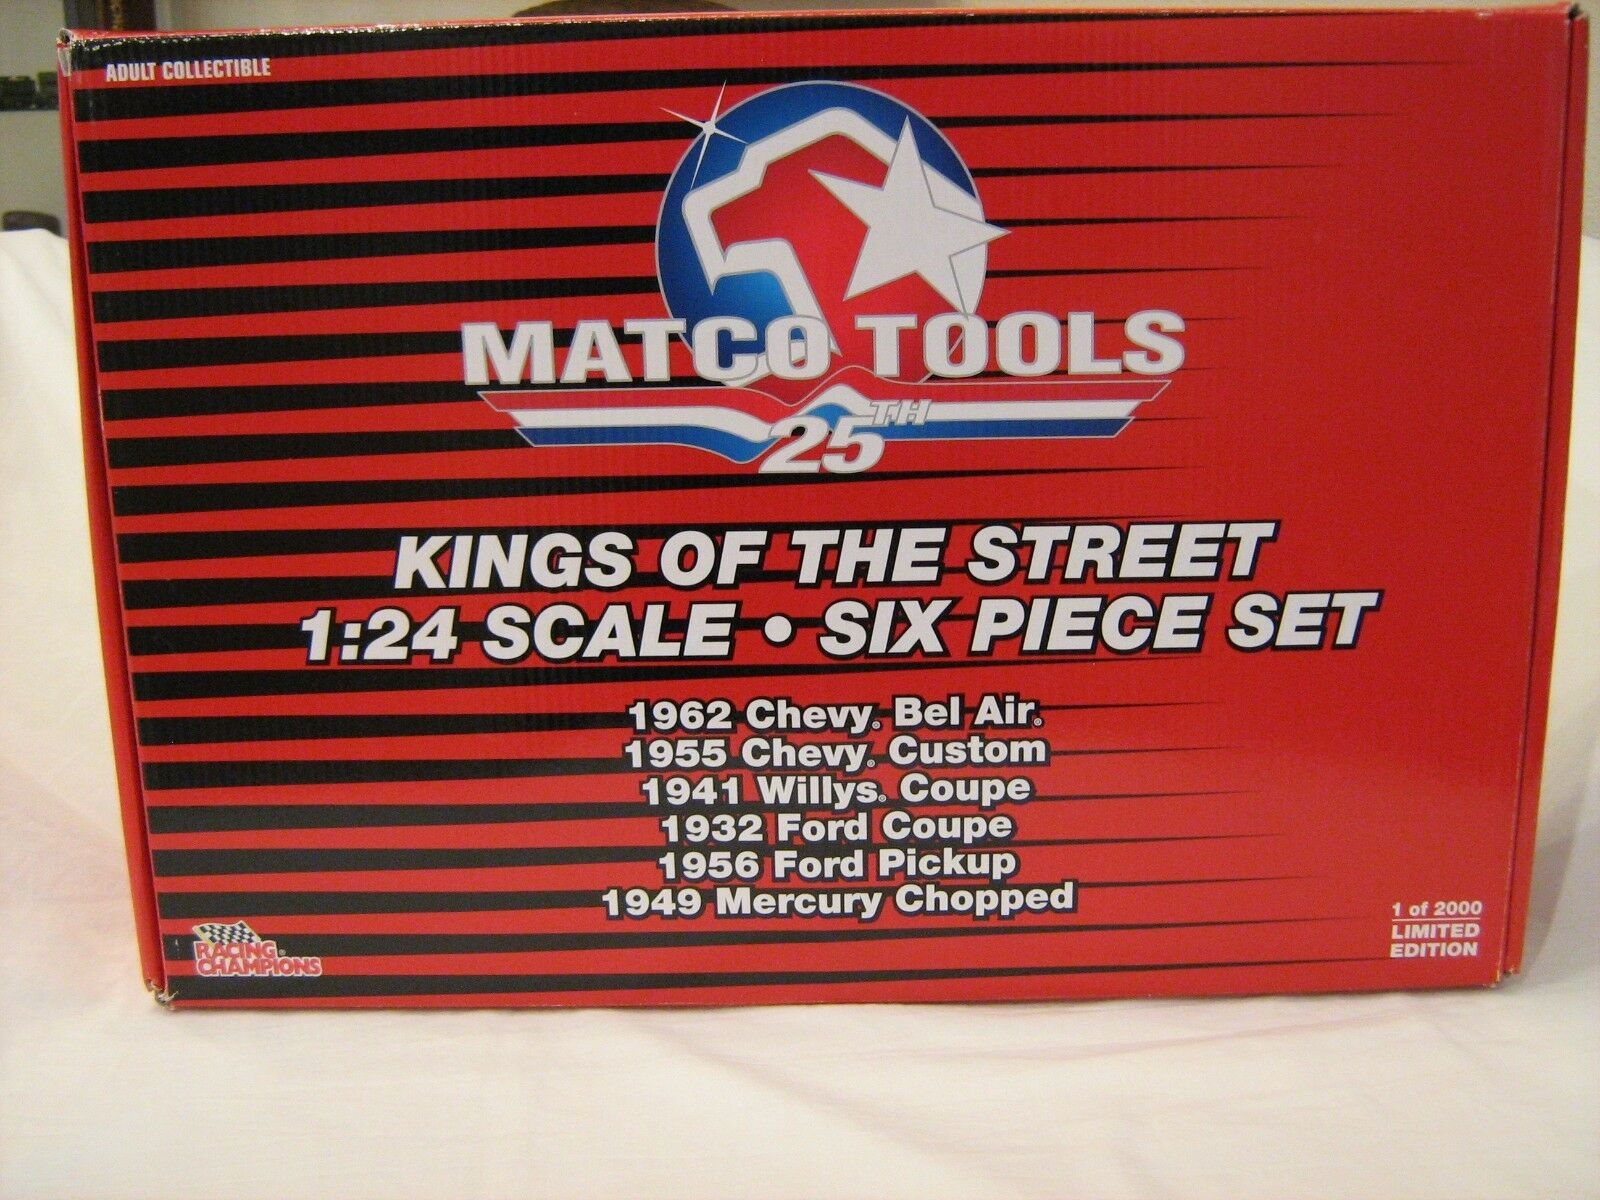 Matco Tools 1 24 Kings of the Street 6 car set LE of 2000